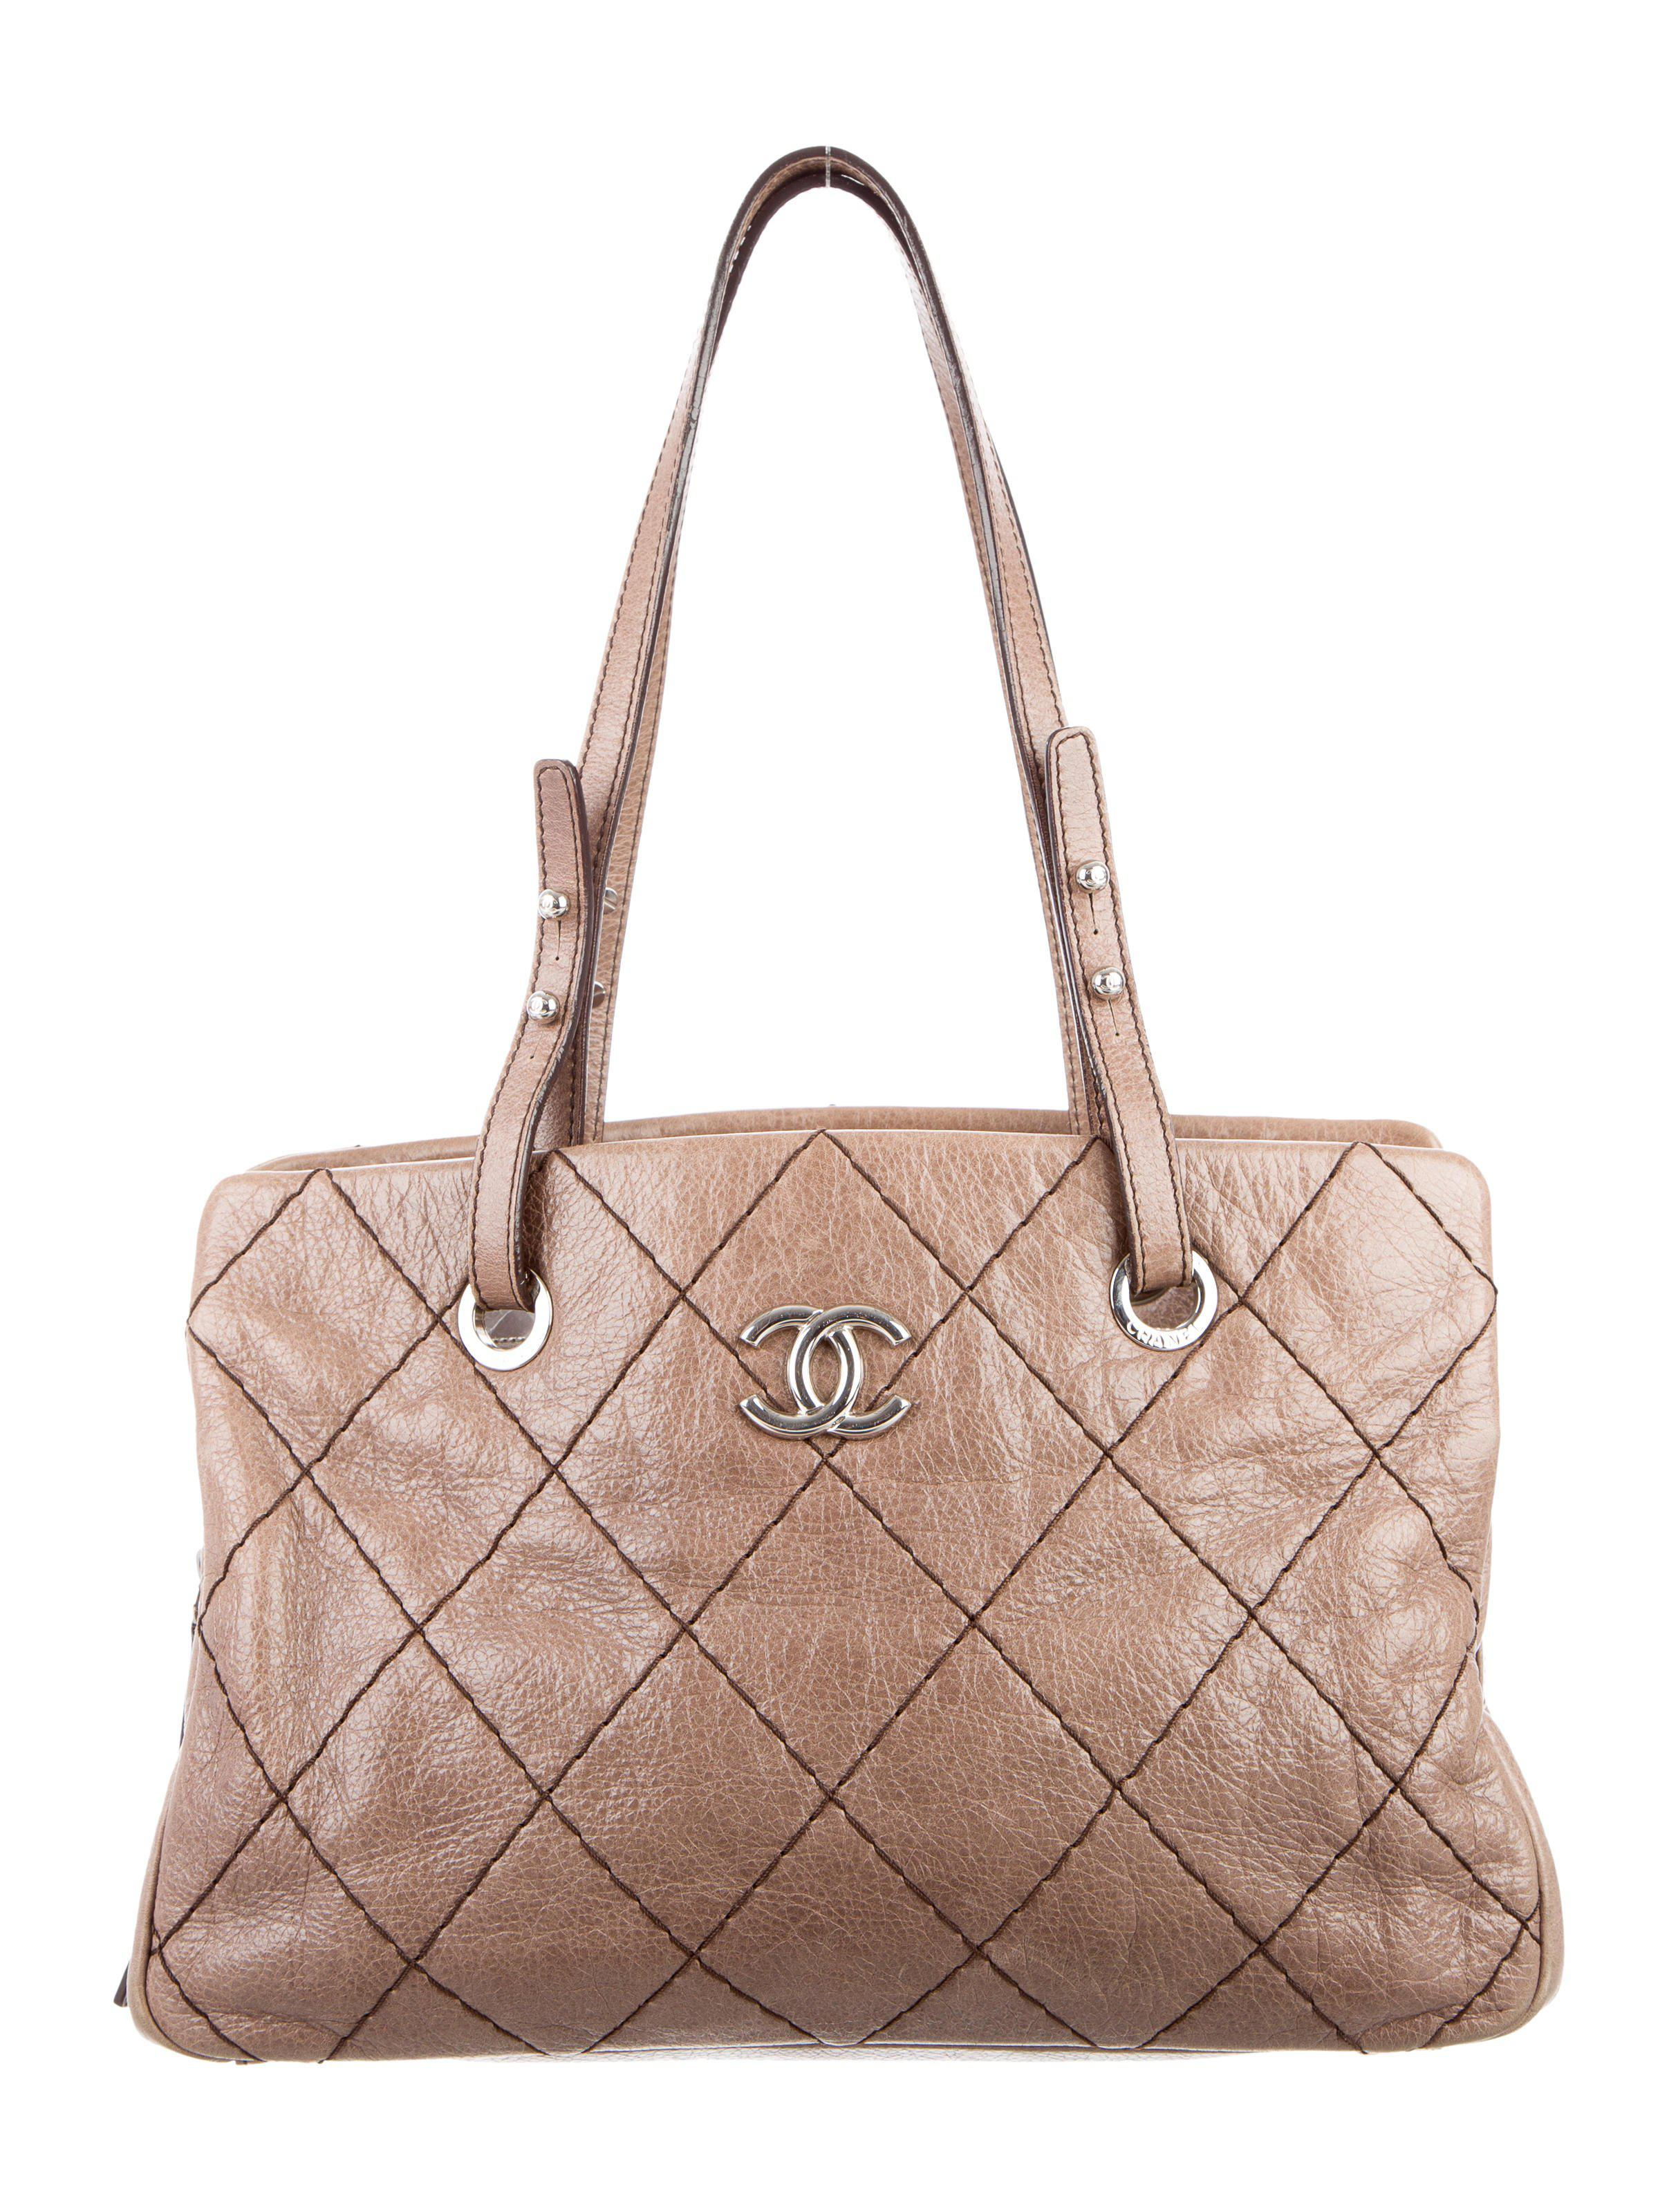 Lyst - Chanel On The Road Zip Tote Brown in Metallic b103491123565